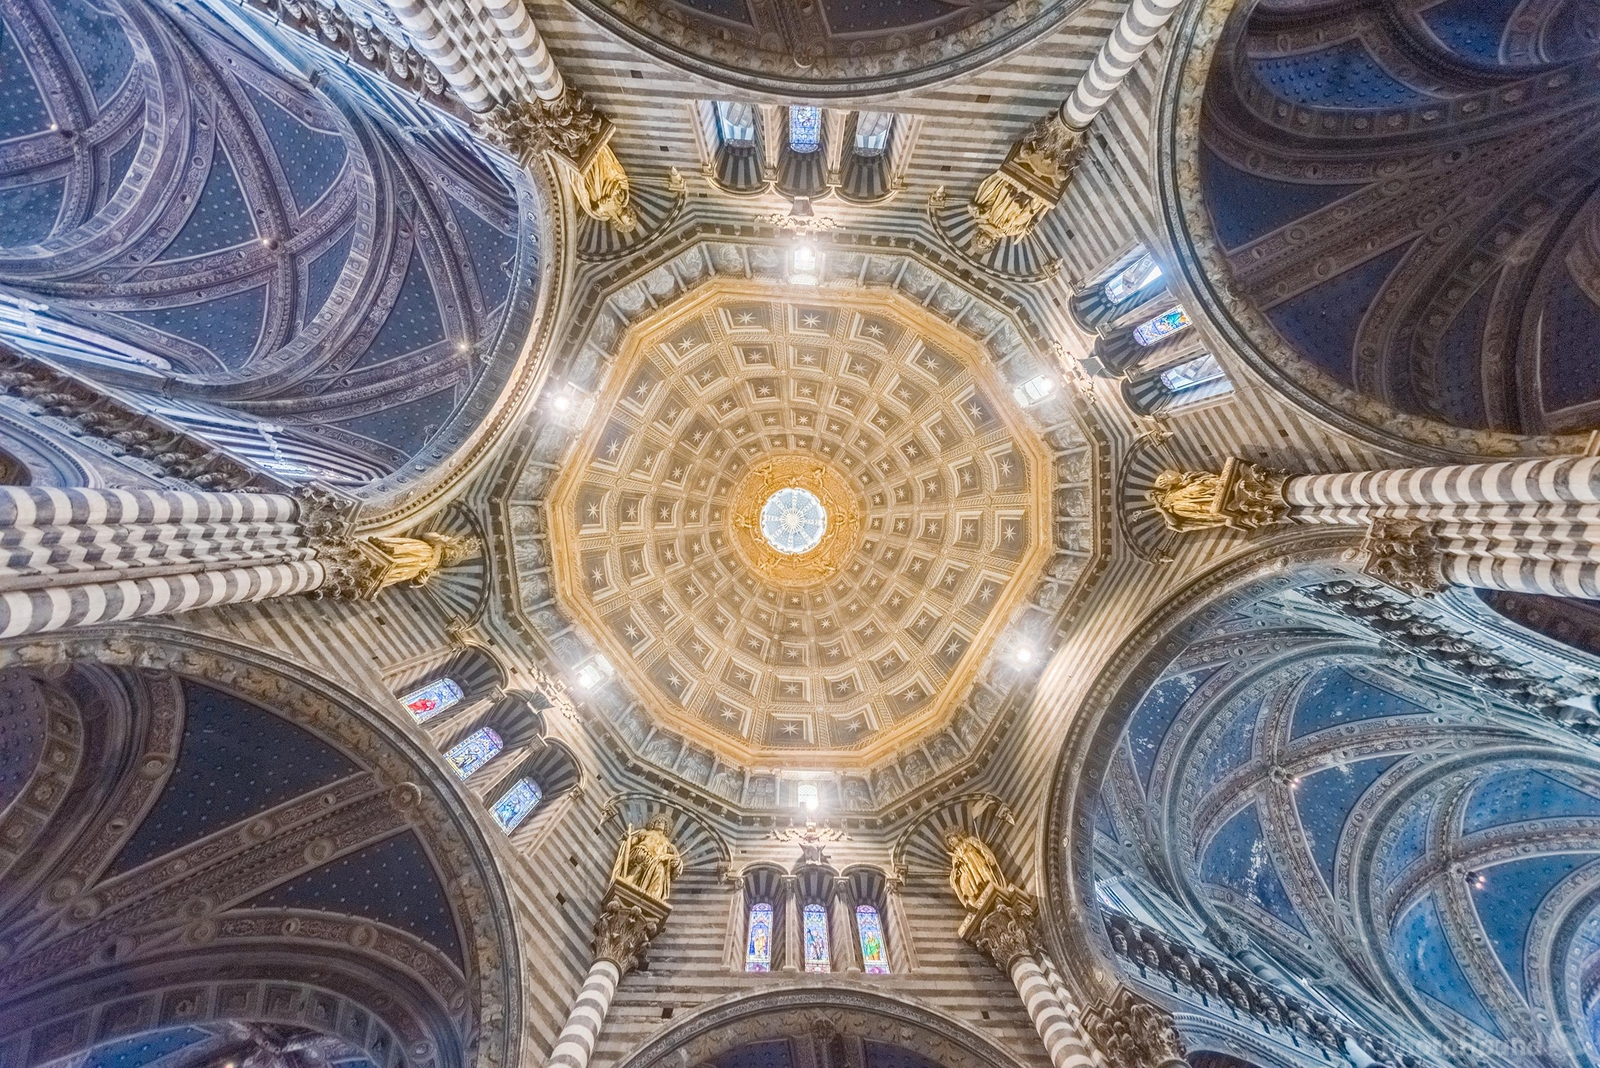 Image of The Siena Cathedral Interior by Luka Esenko